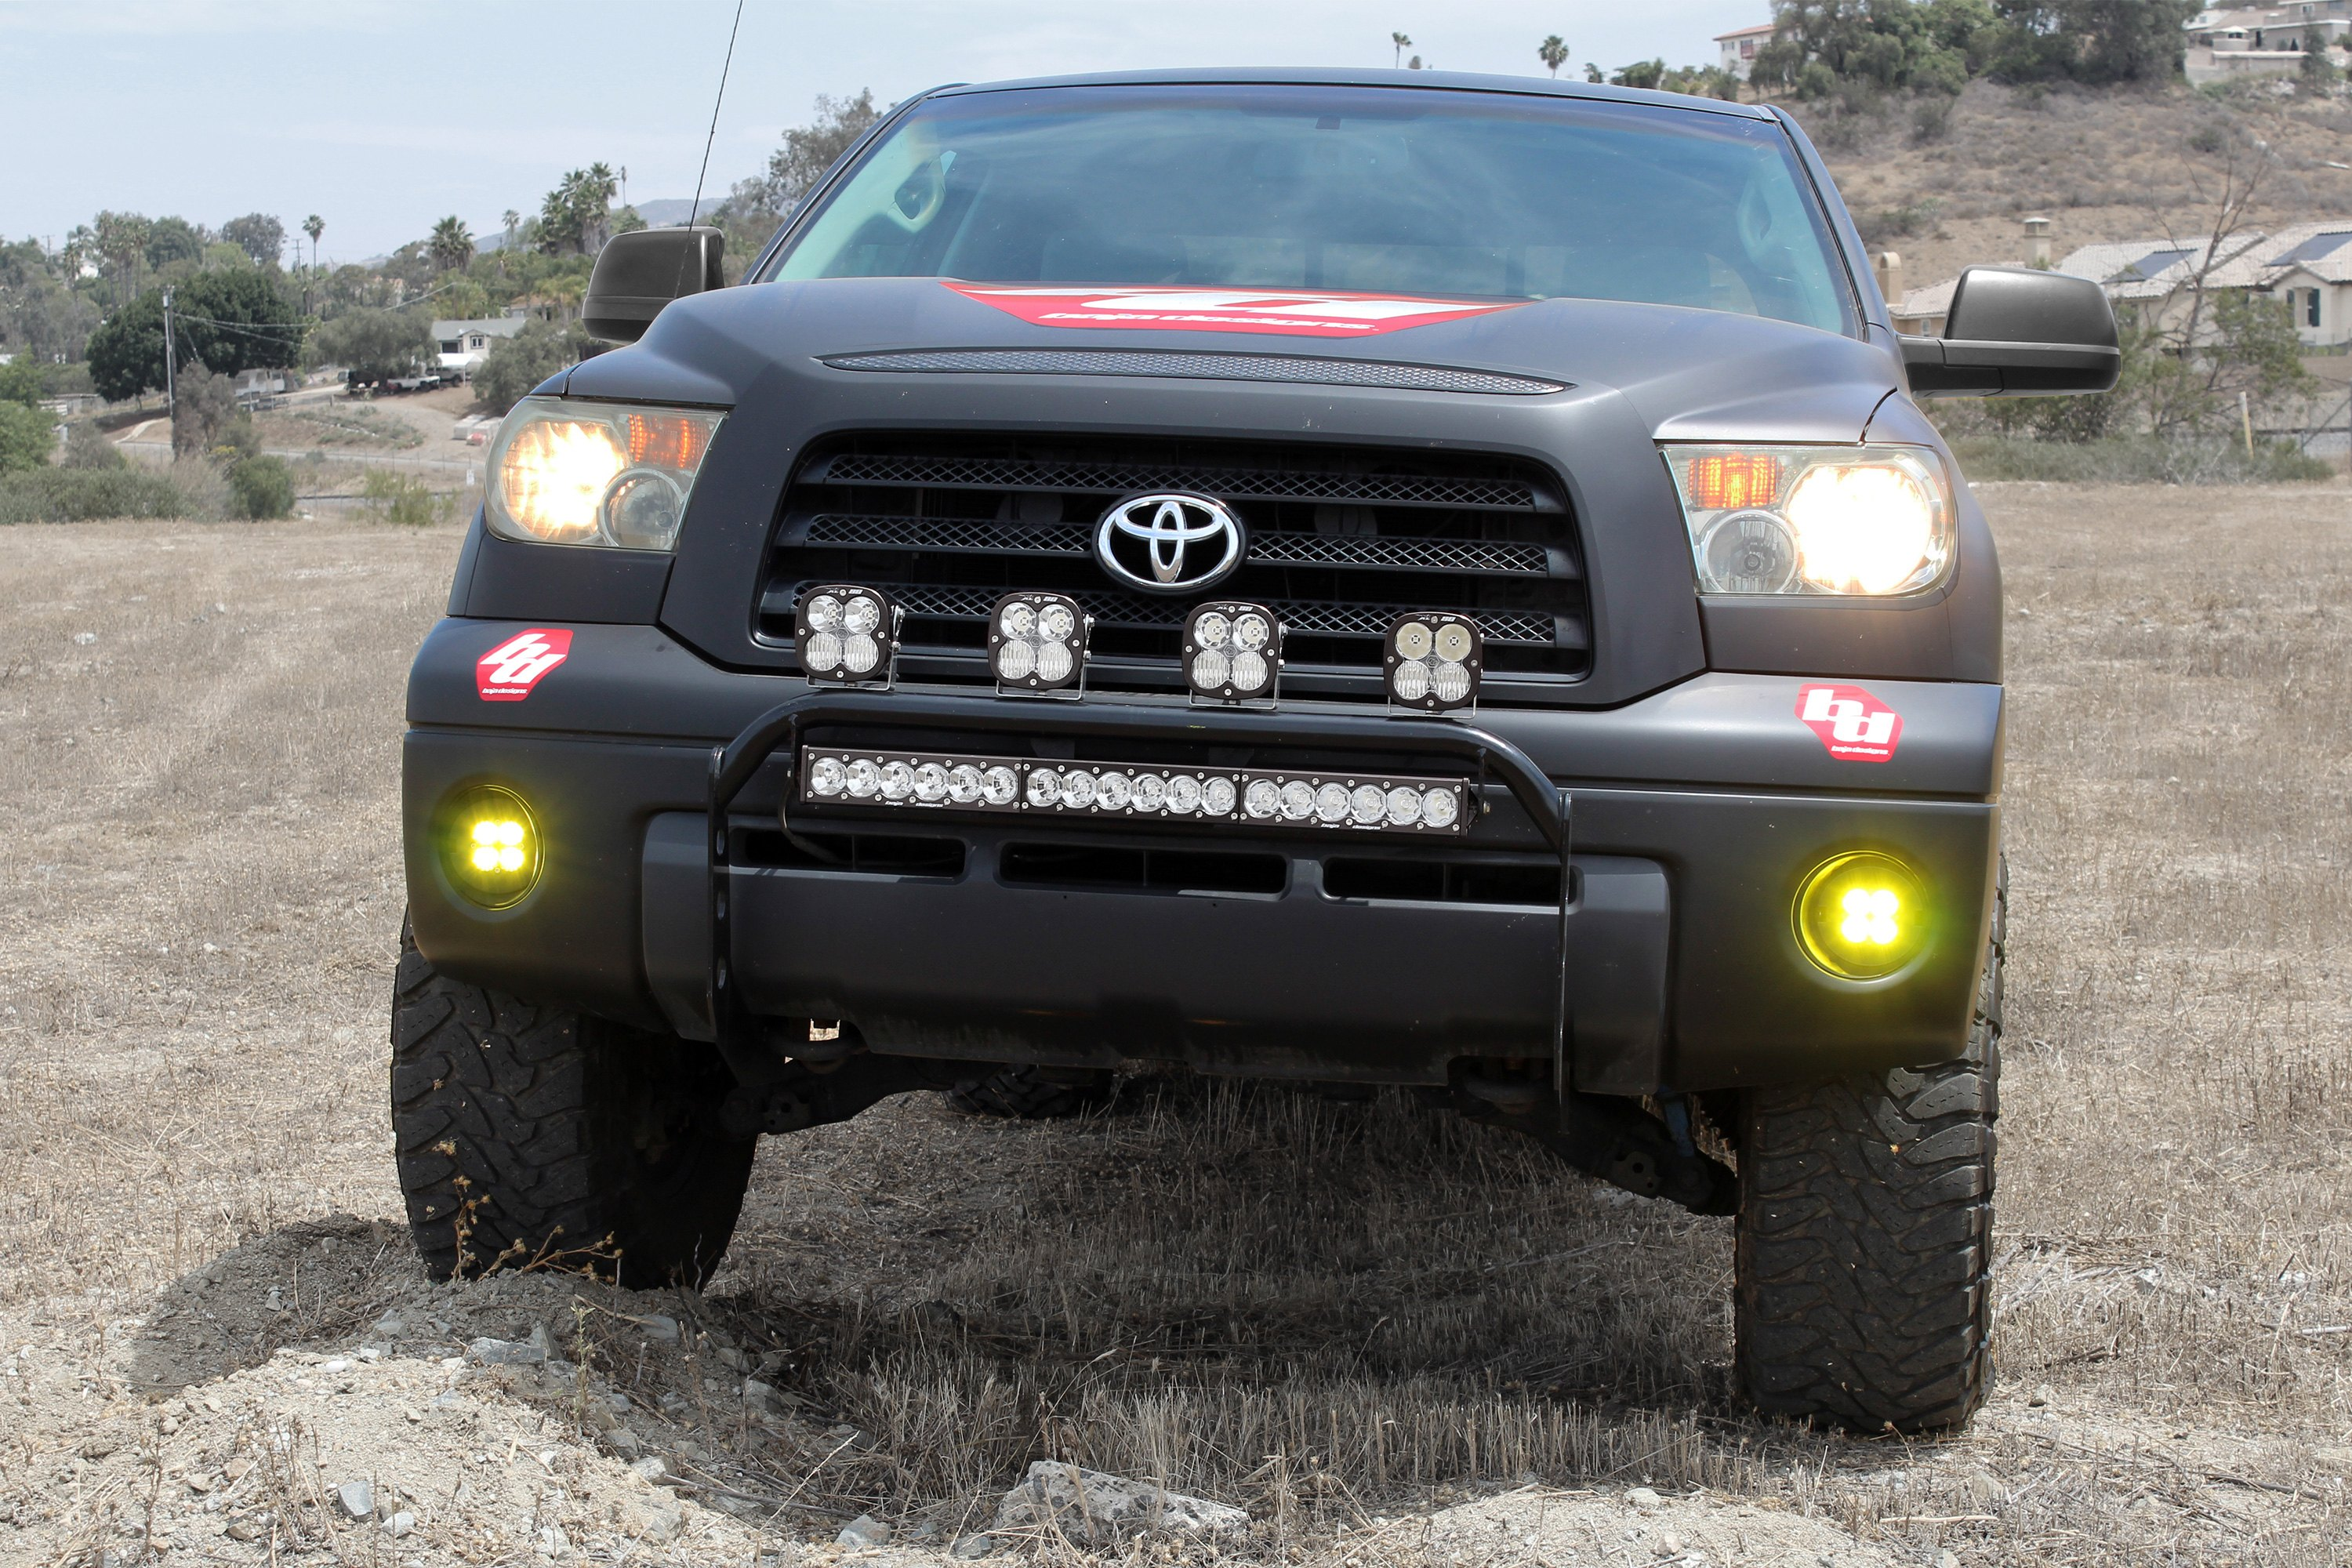 Baja Designs 44 7557 Grille Mounted Onx6 High Power 10 101w Wiring Harness Installed Led Light Bar